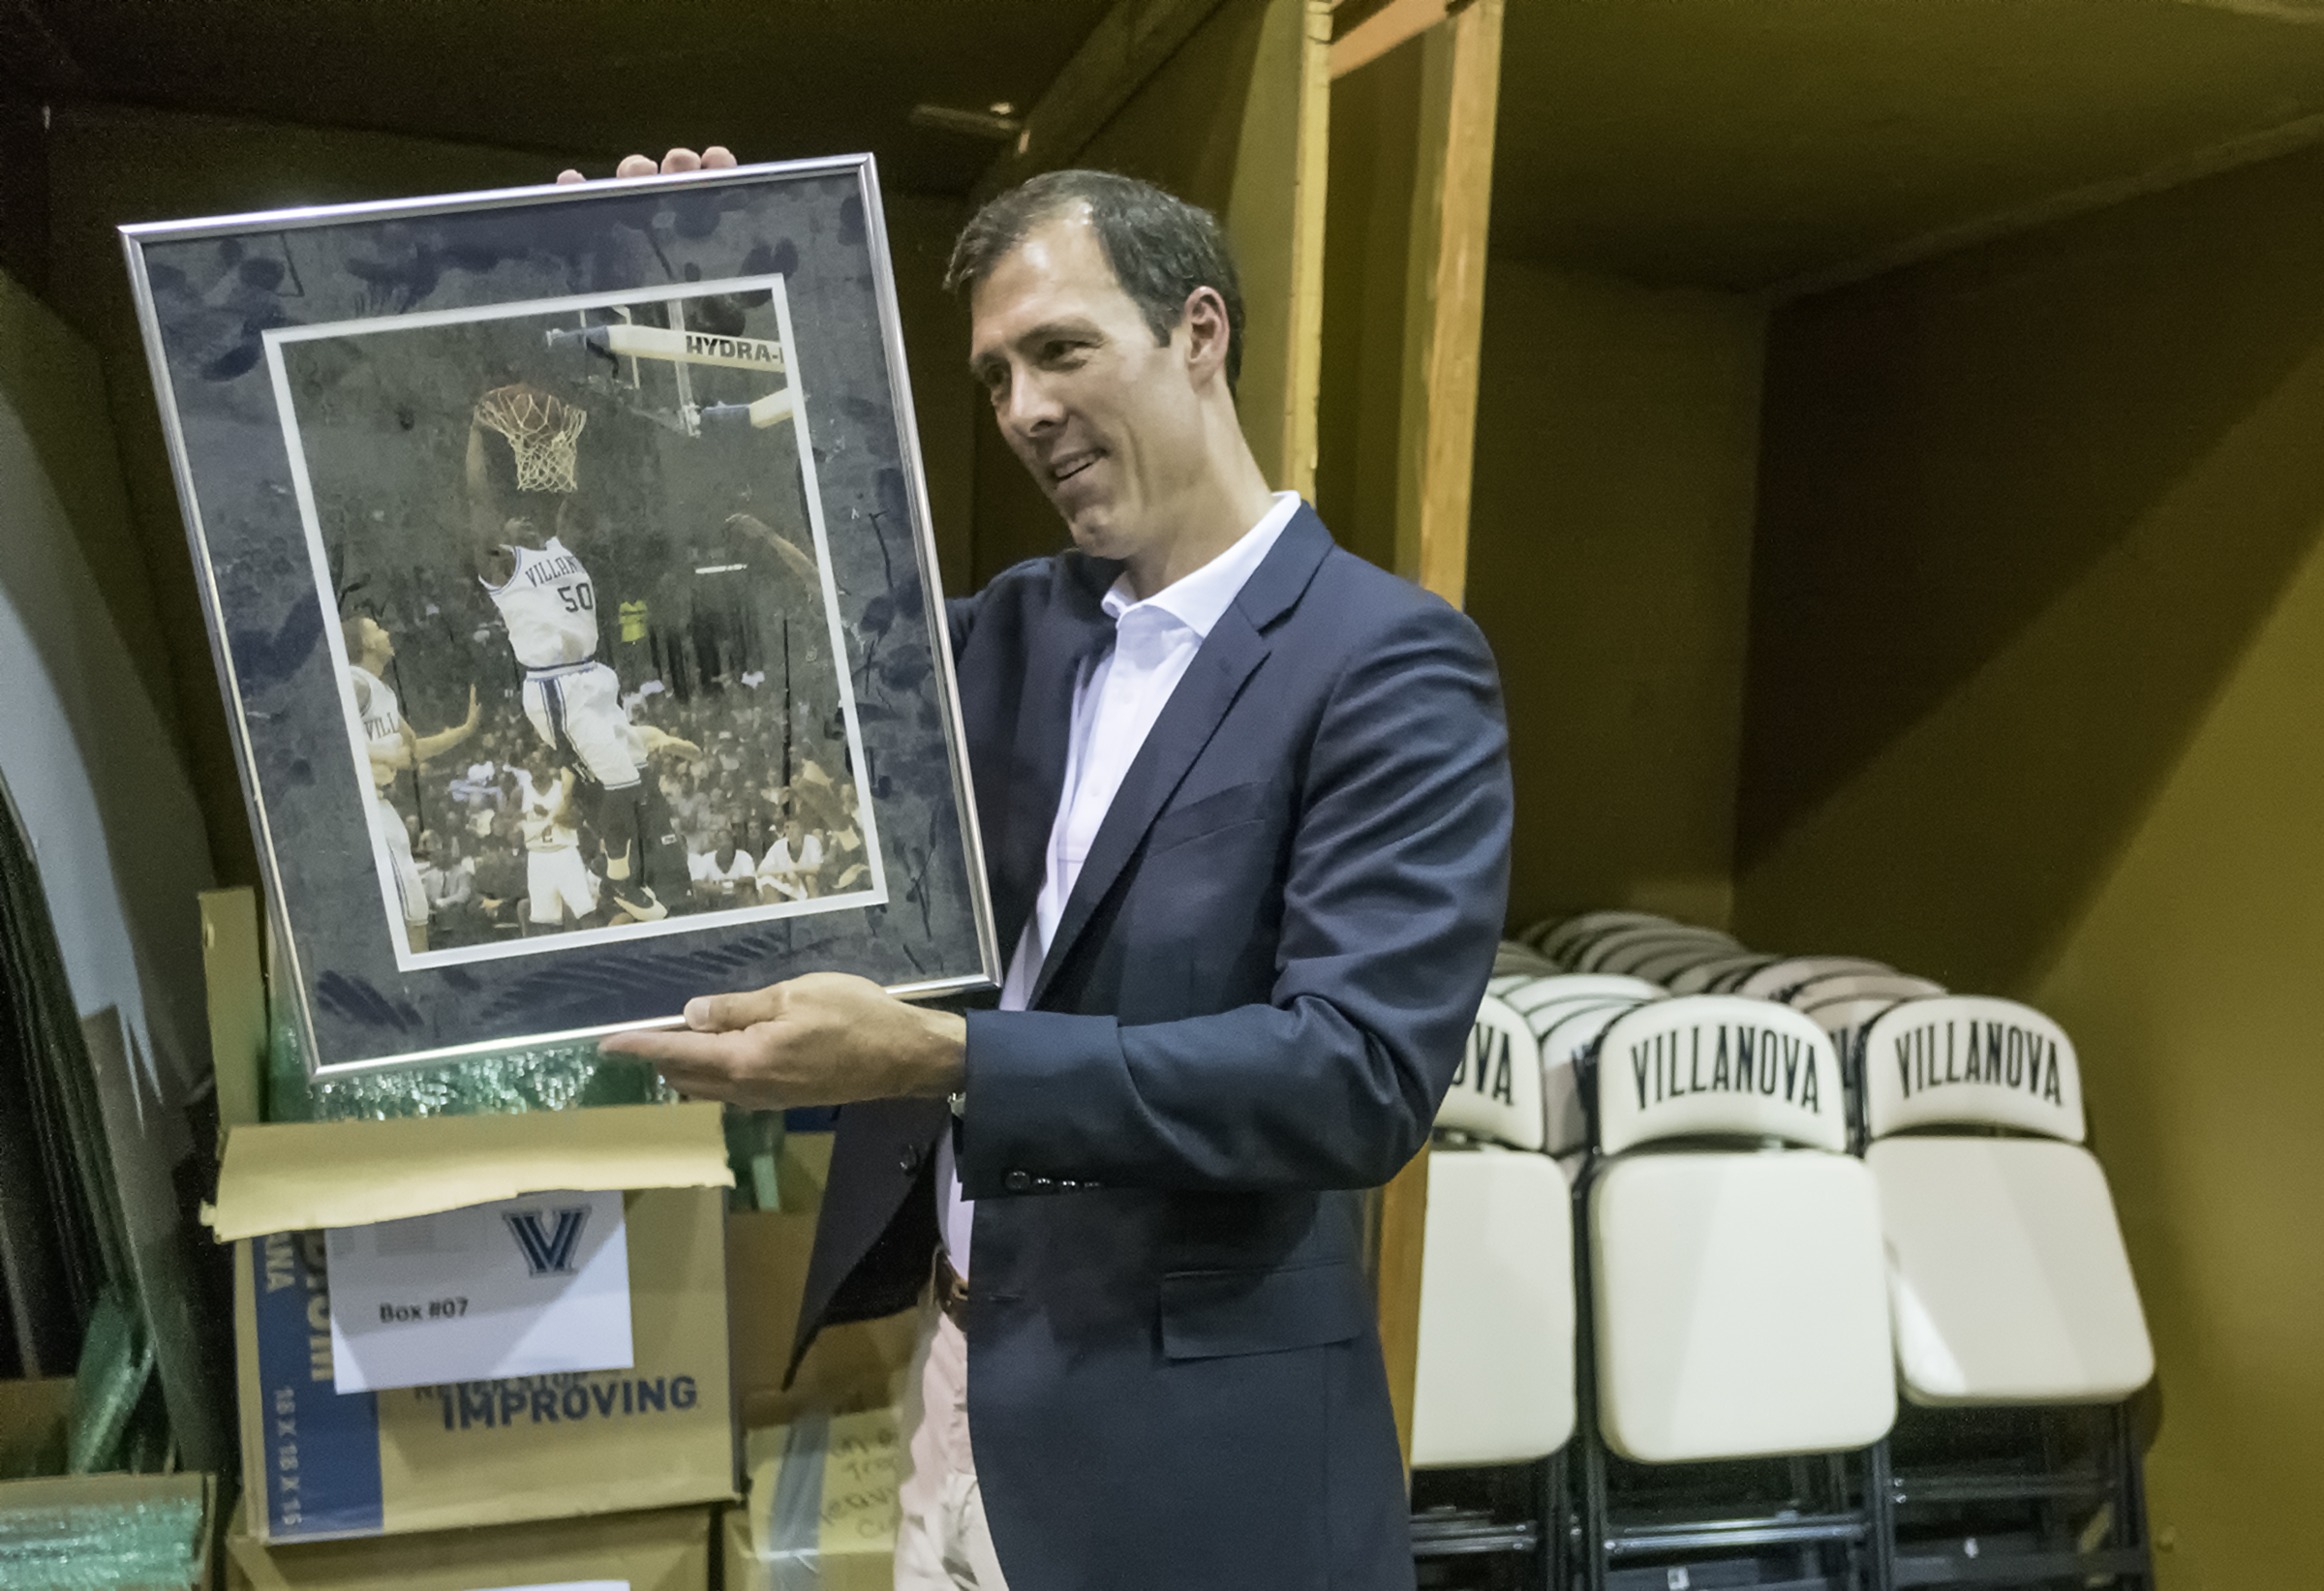 Scott Reidenbach, at his King of Prussia warehouse, looks over a photograph of Will Sheridan dunking against Temple.